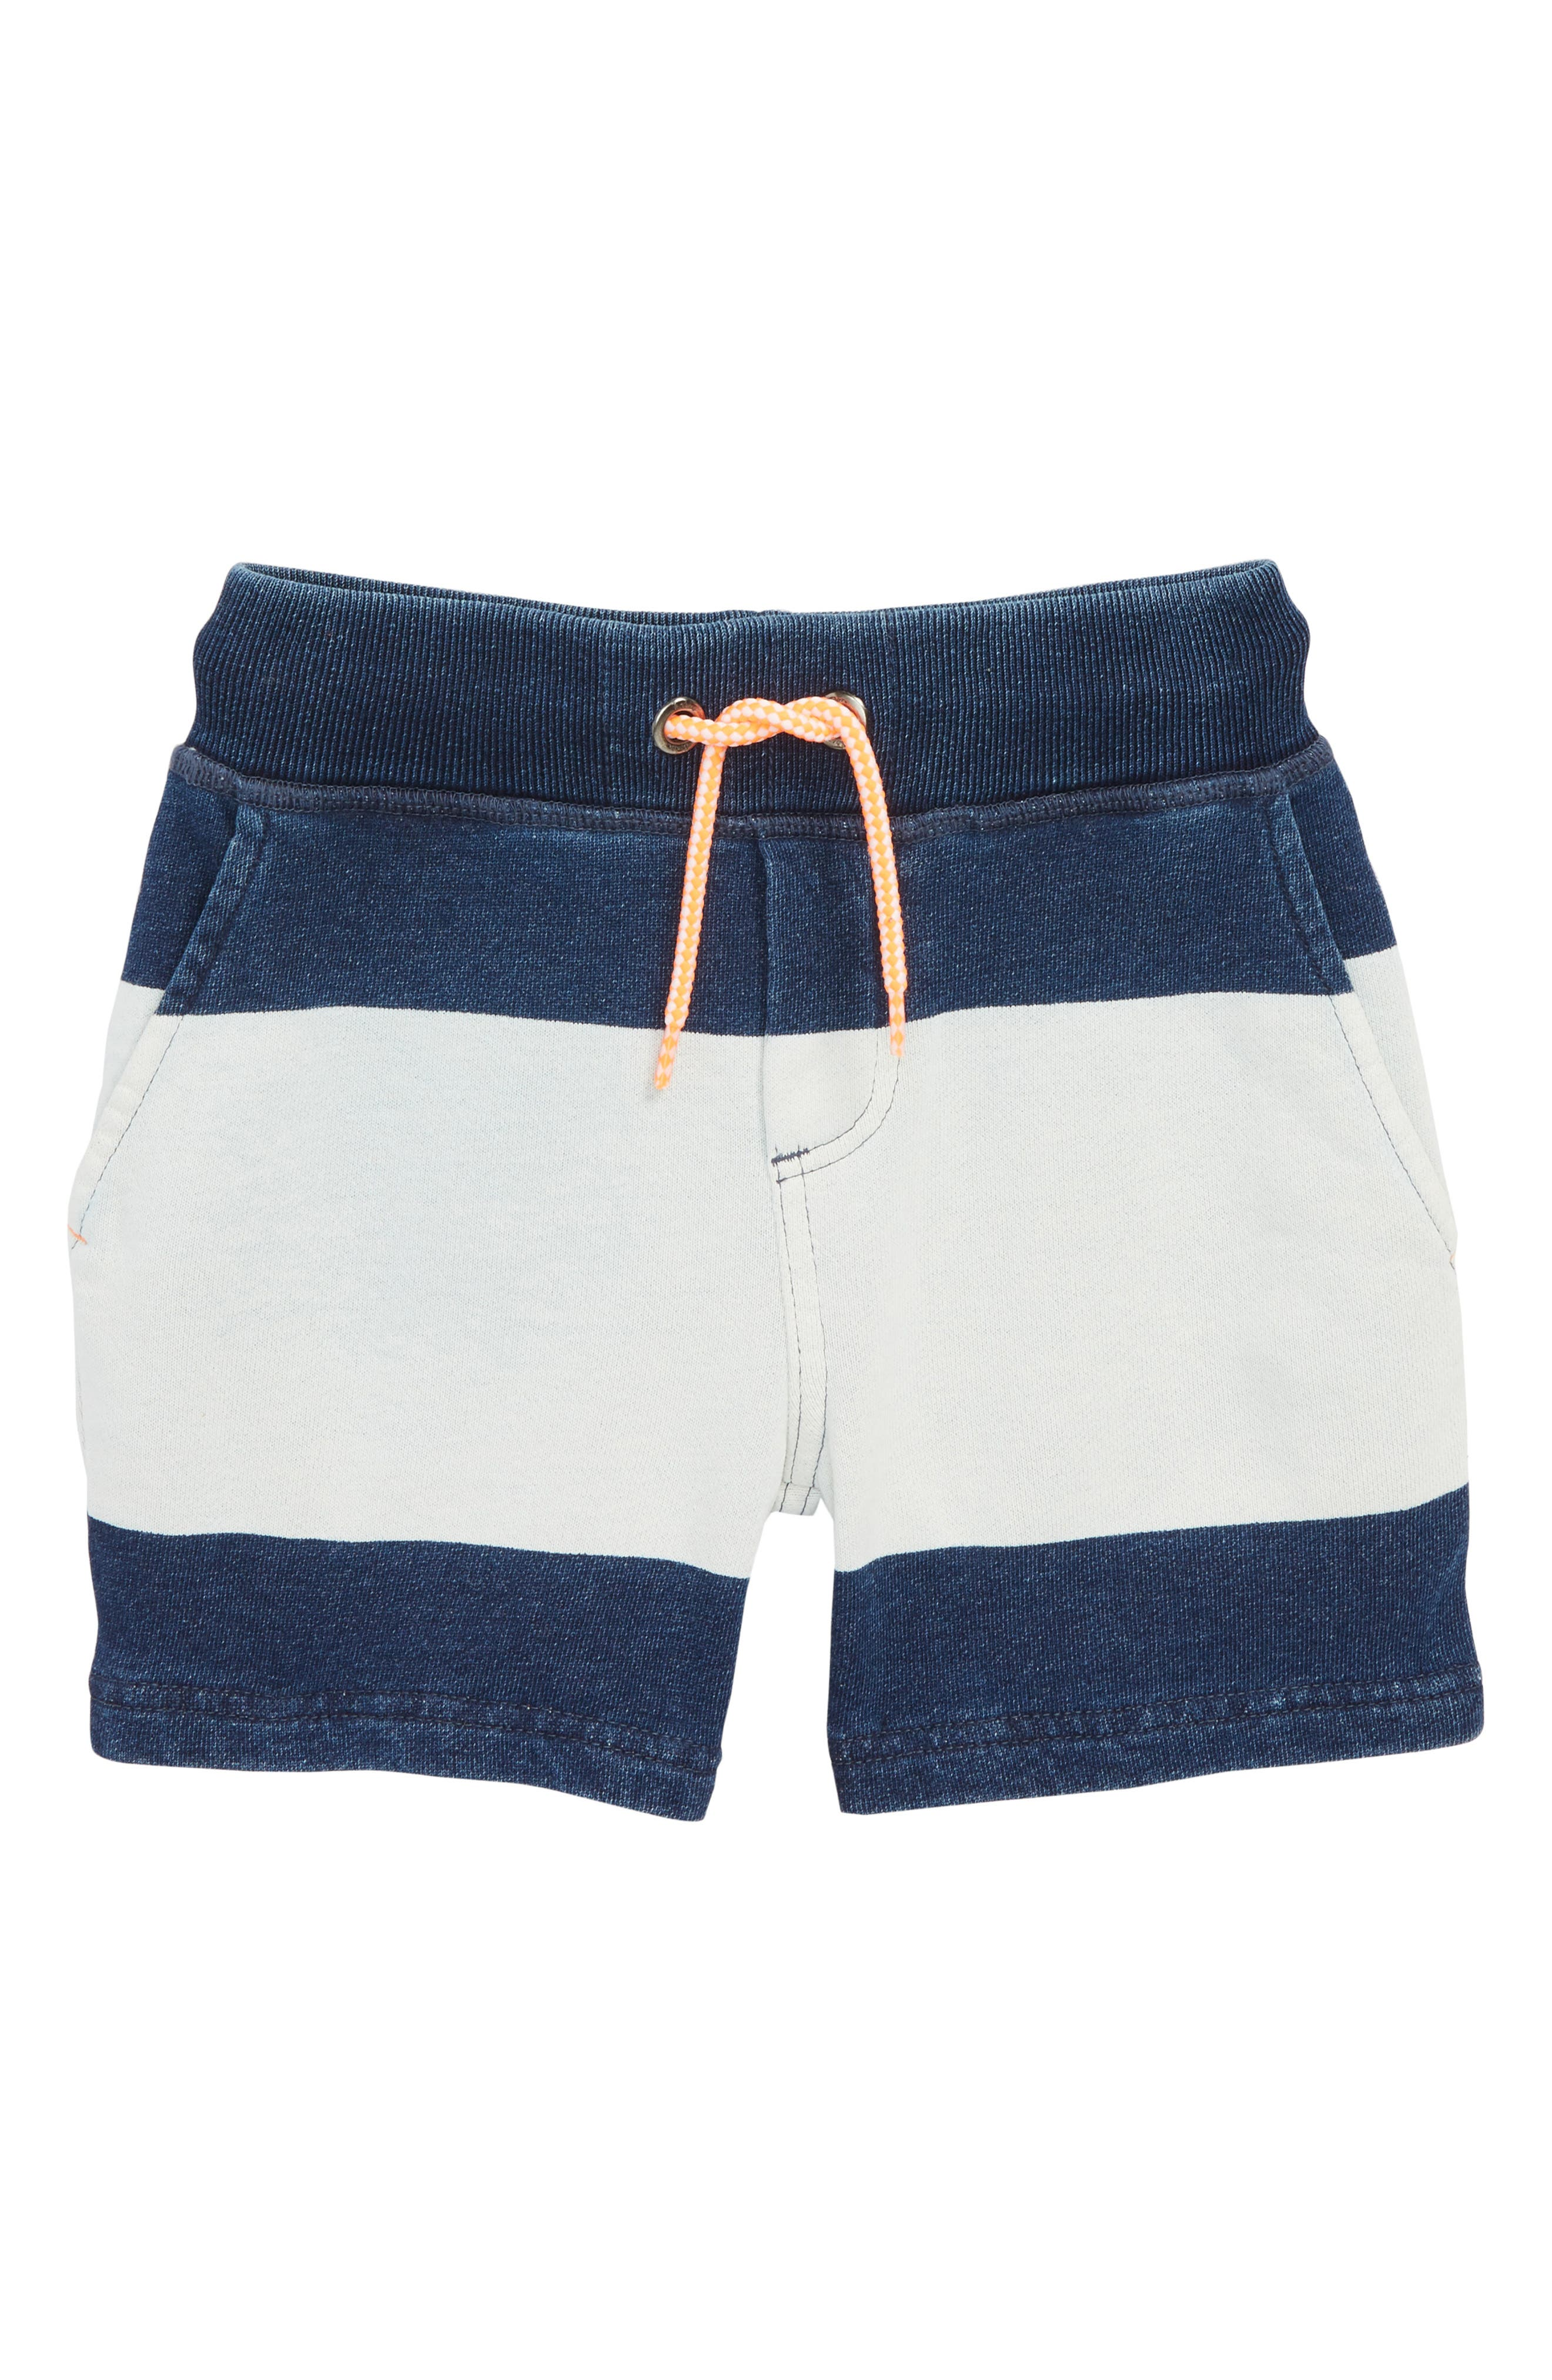 Embroidered Jersey Shorts,                         Main,                         color, Rinse/ Mid Indigo